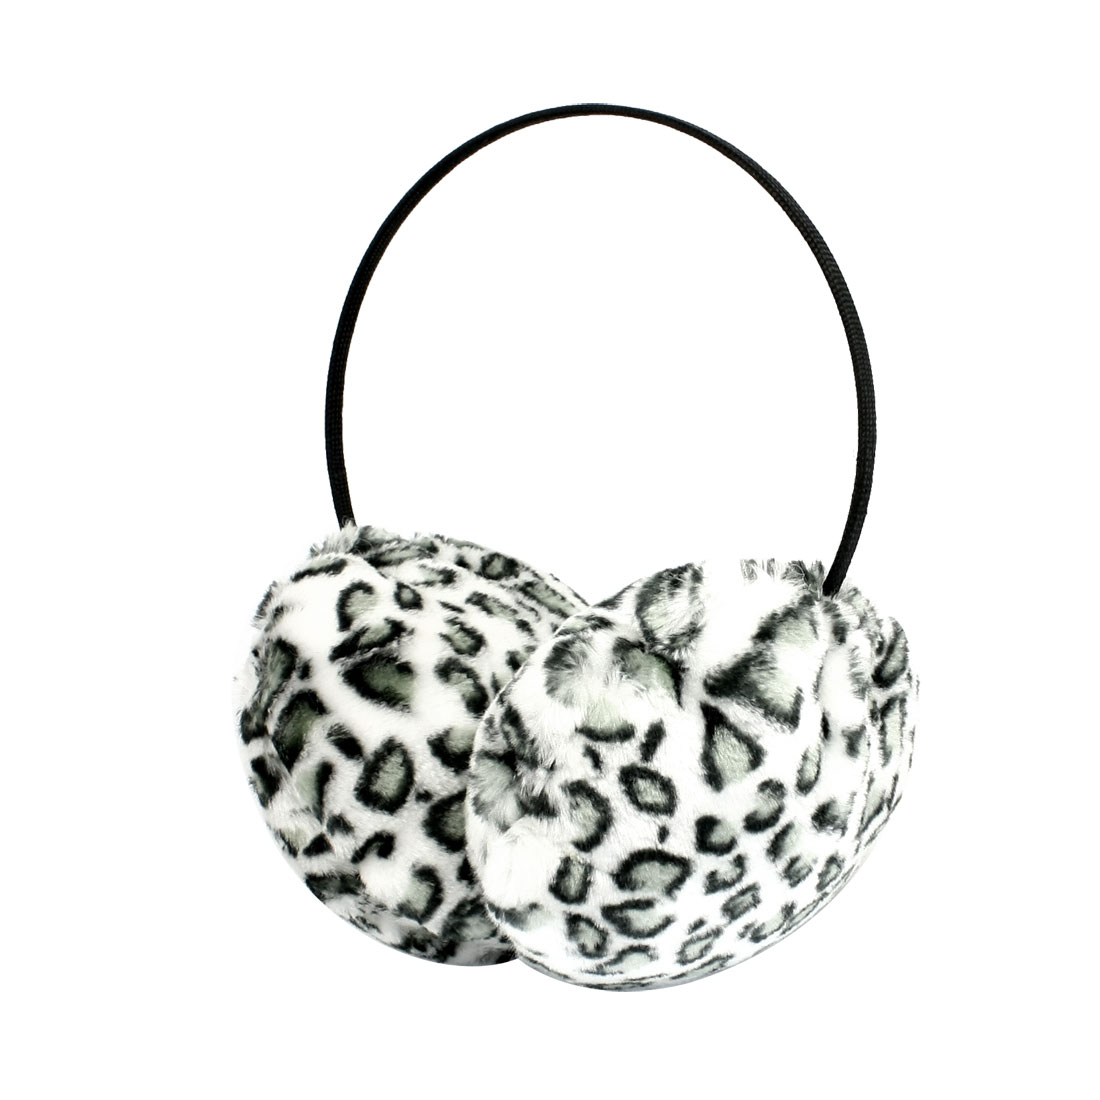 Unisex Black White Leopard Print Nylon Wrap Metal Band Ear Warmer Earmuffs